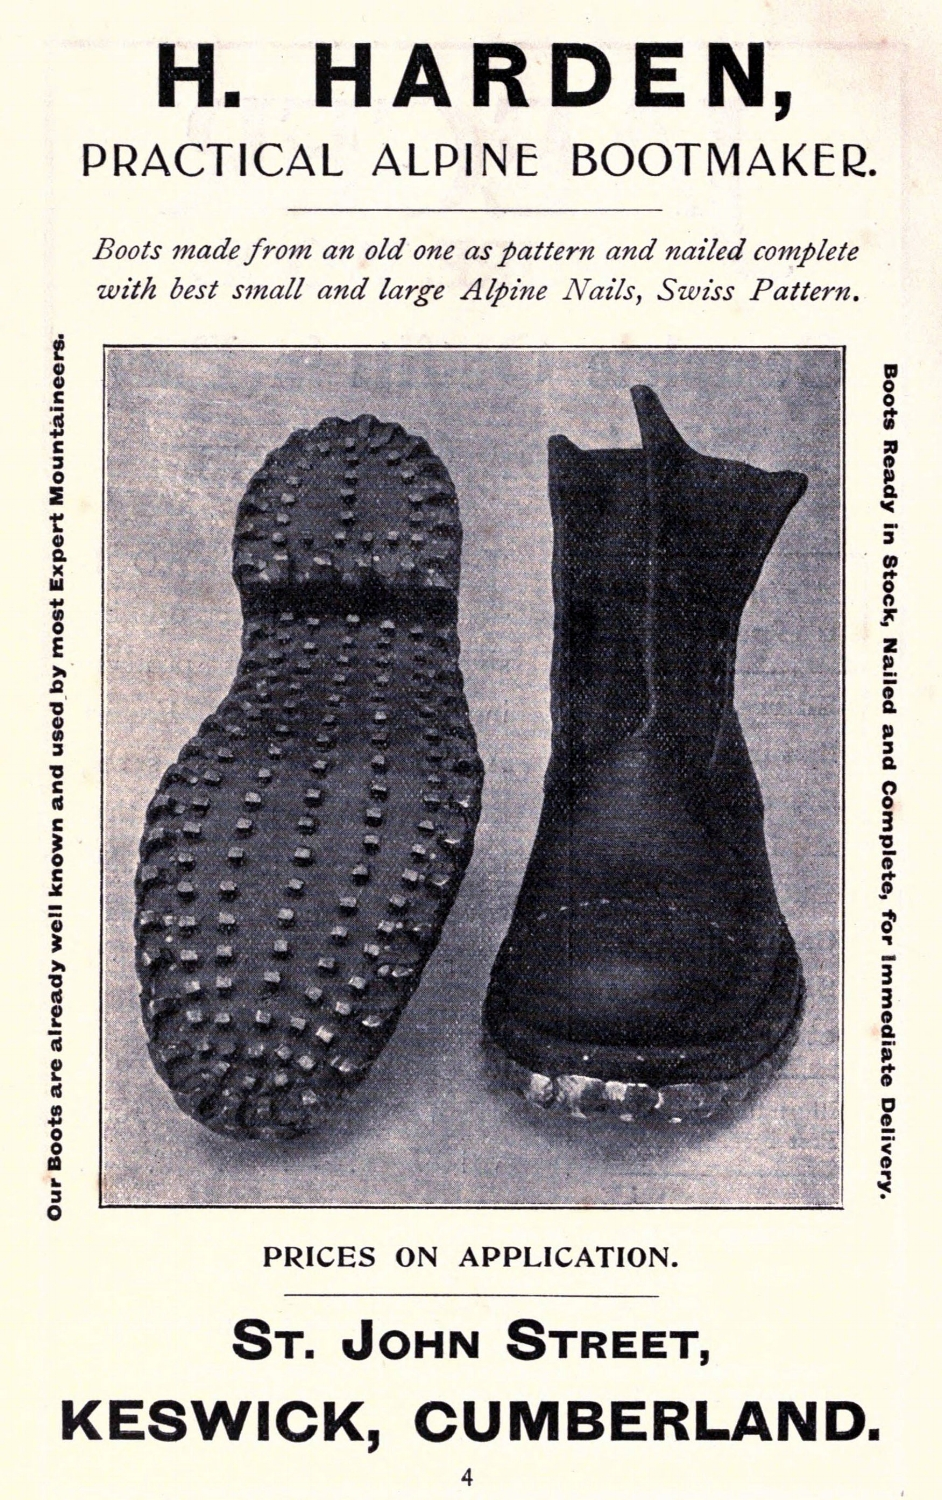 Mountaineering boots circa 1911.   By H. Harden - Jones, Owen Glynne Rock-climbing in the English Lake District, 1911, Public Domain, https://commons.wikimedia.org/w/index.php?curid=9433840